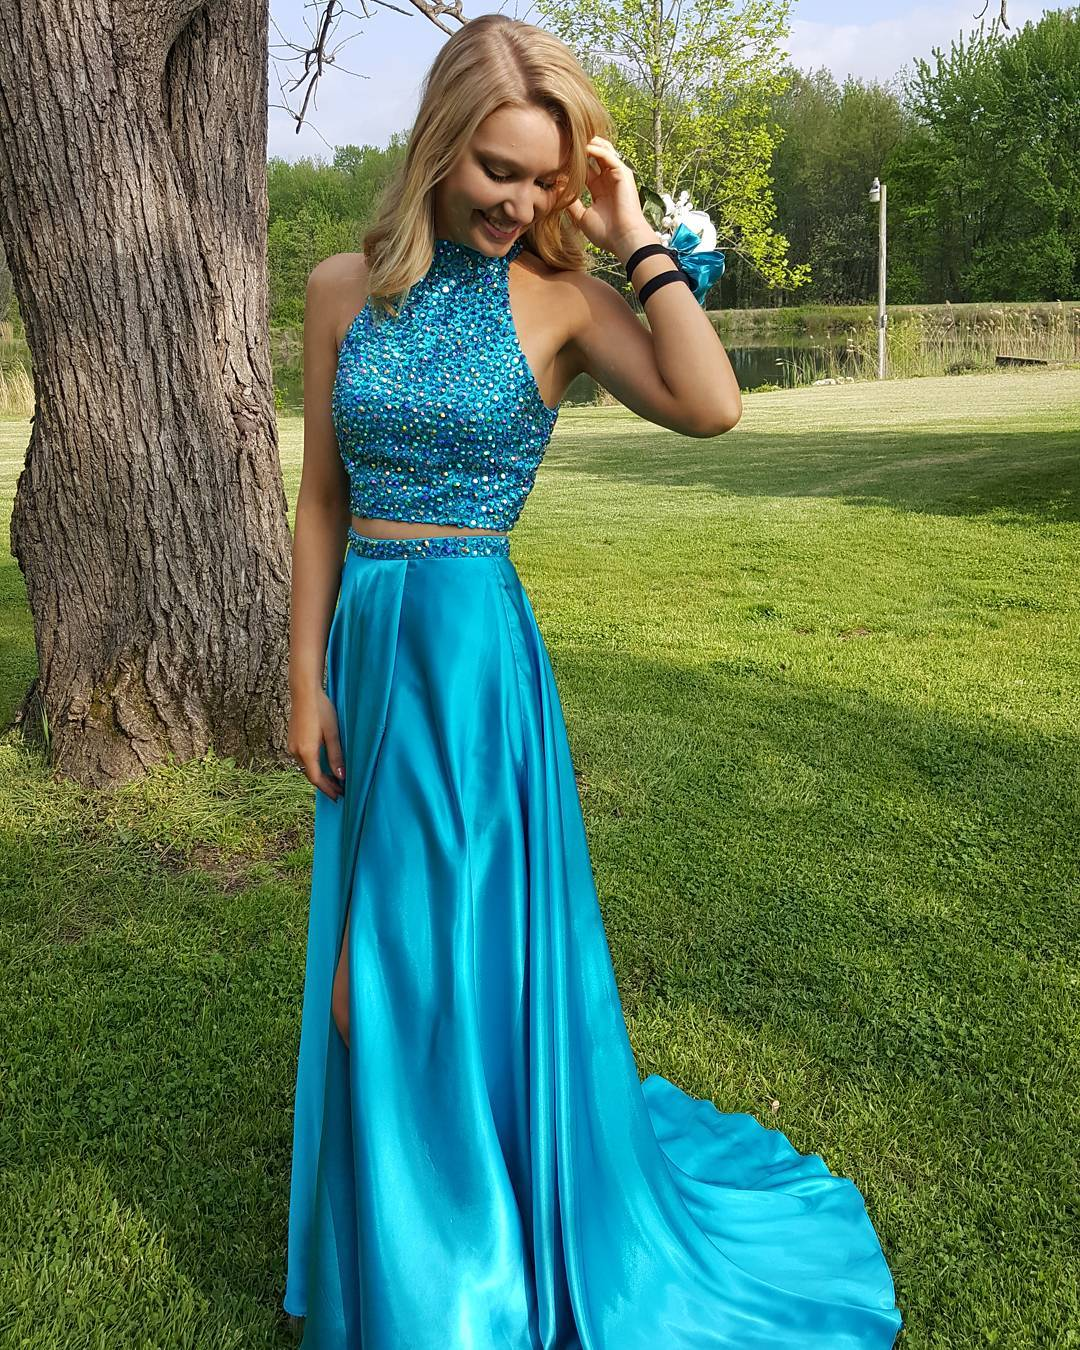 New Arrival Prom Dress,Modest Prom Dress,Pretty Two piece Prom Gowns,Blue Heavy Beading satin Prom Dresses,Sexy Evening Dresses,With Slit Prom Dresses,Sleeveless Evening Dresses